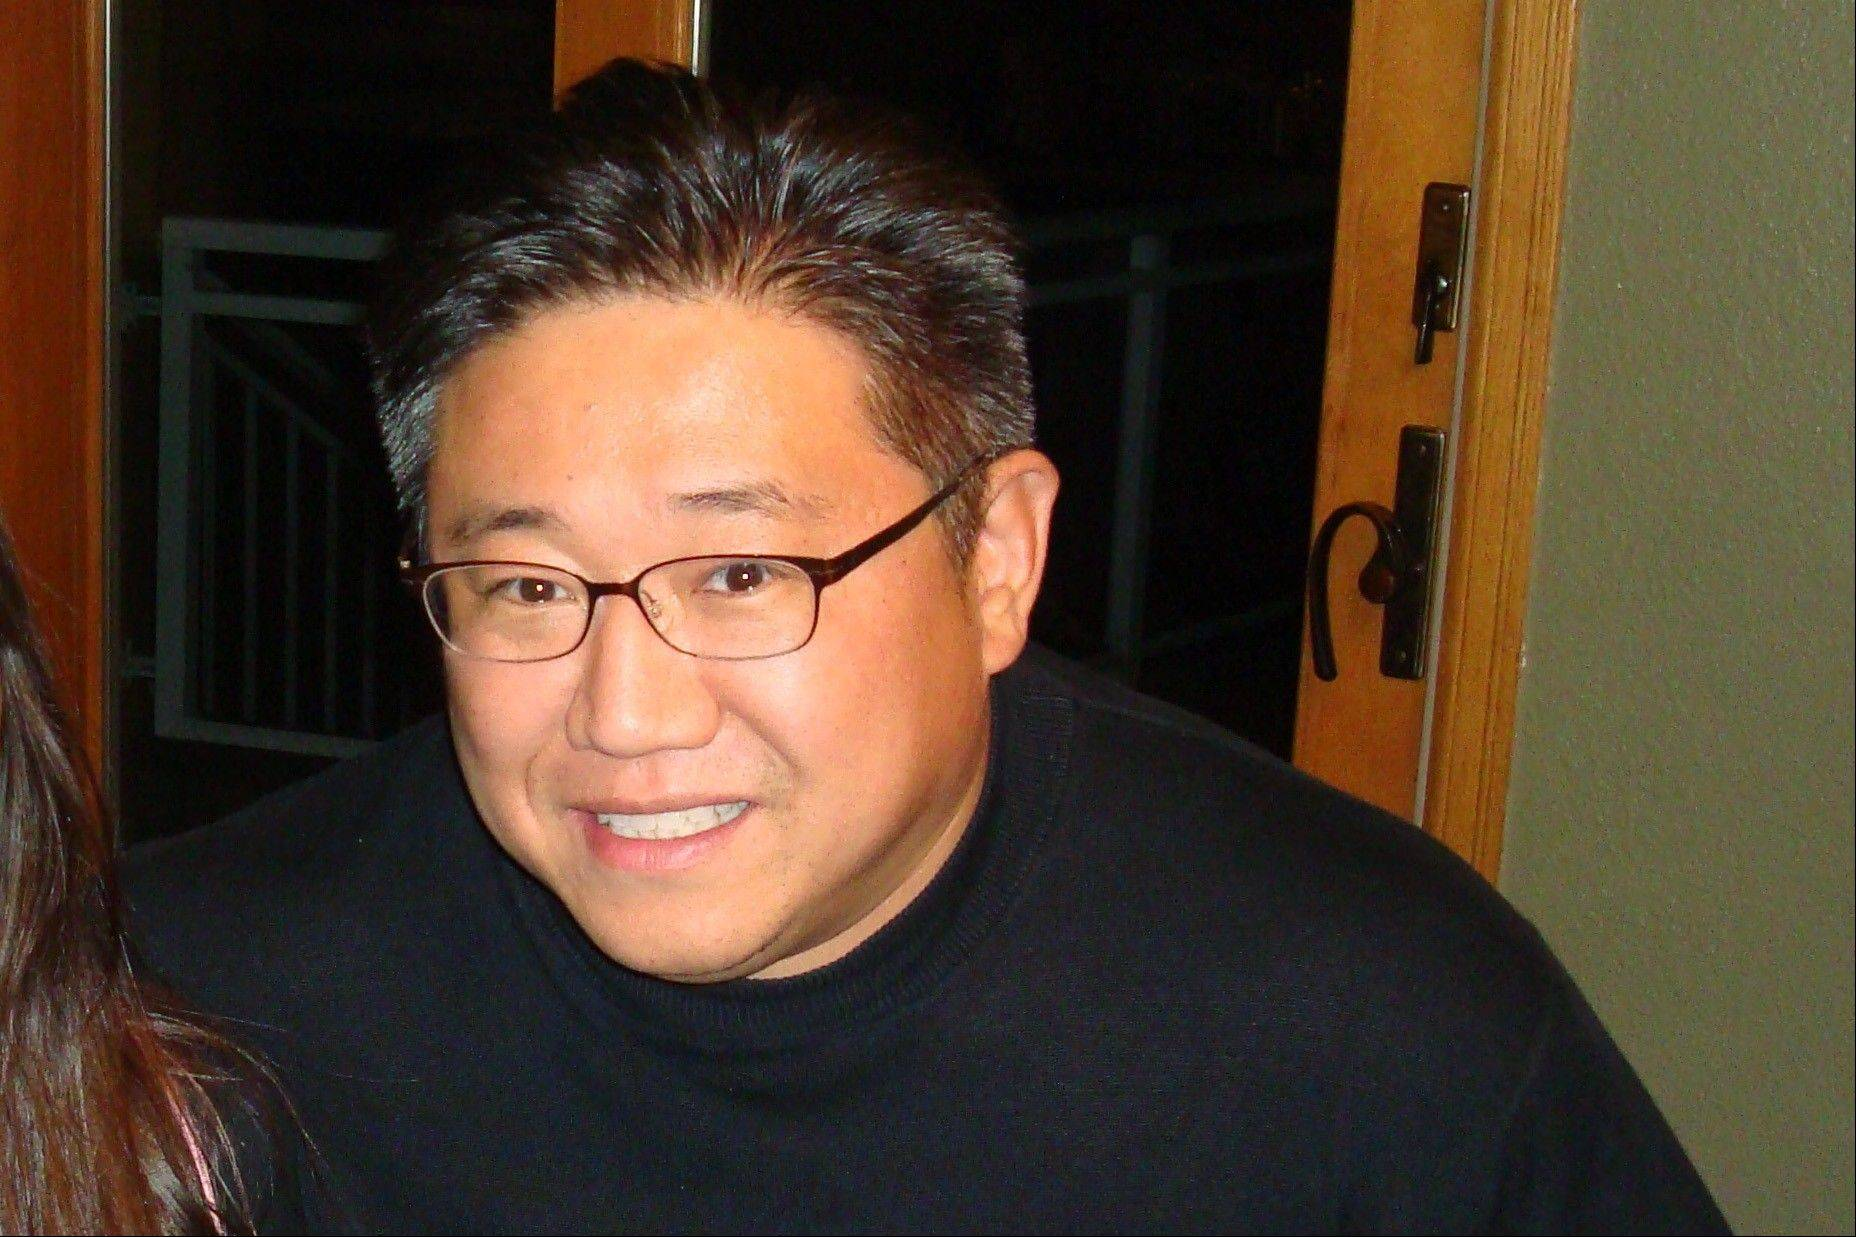 This 2011 file family photo provided by Terri Chung shows Kenneth Bae. Bae, detained in North Korea for the past nine months, has been hospitalized after losing more than 50 pounds, and the need to bring him home is becoming more urgent, his sister said Sunday. Bae, a 45-year-old tour operator and Christian missionary, was arrested last November and accused of subversive activities against the government. He was sentenced in May to 15 years hard labor.